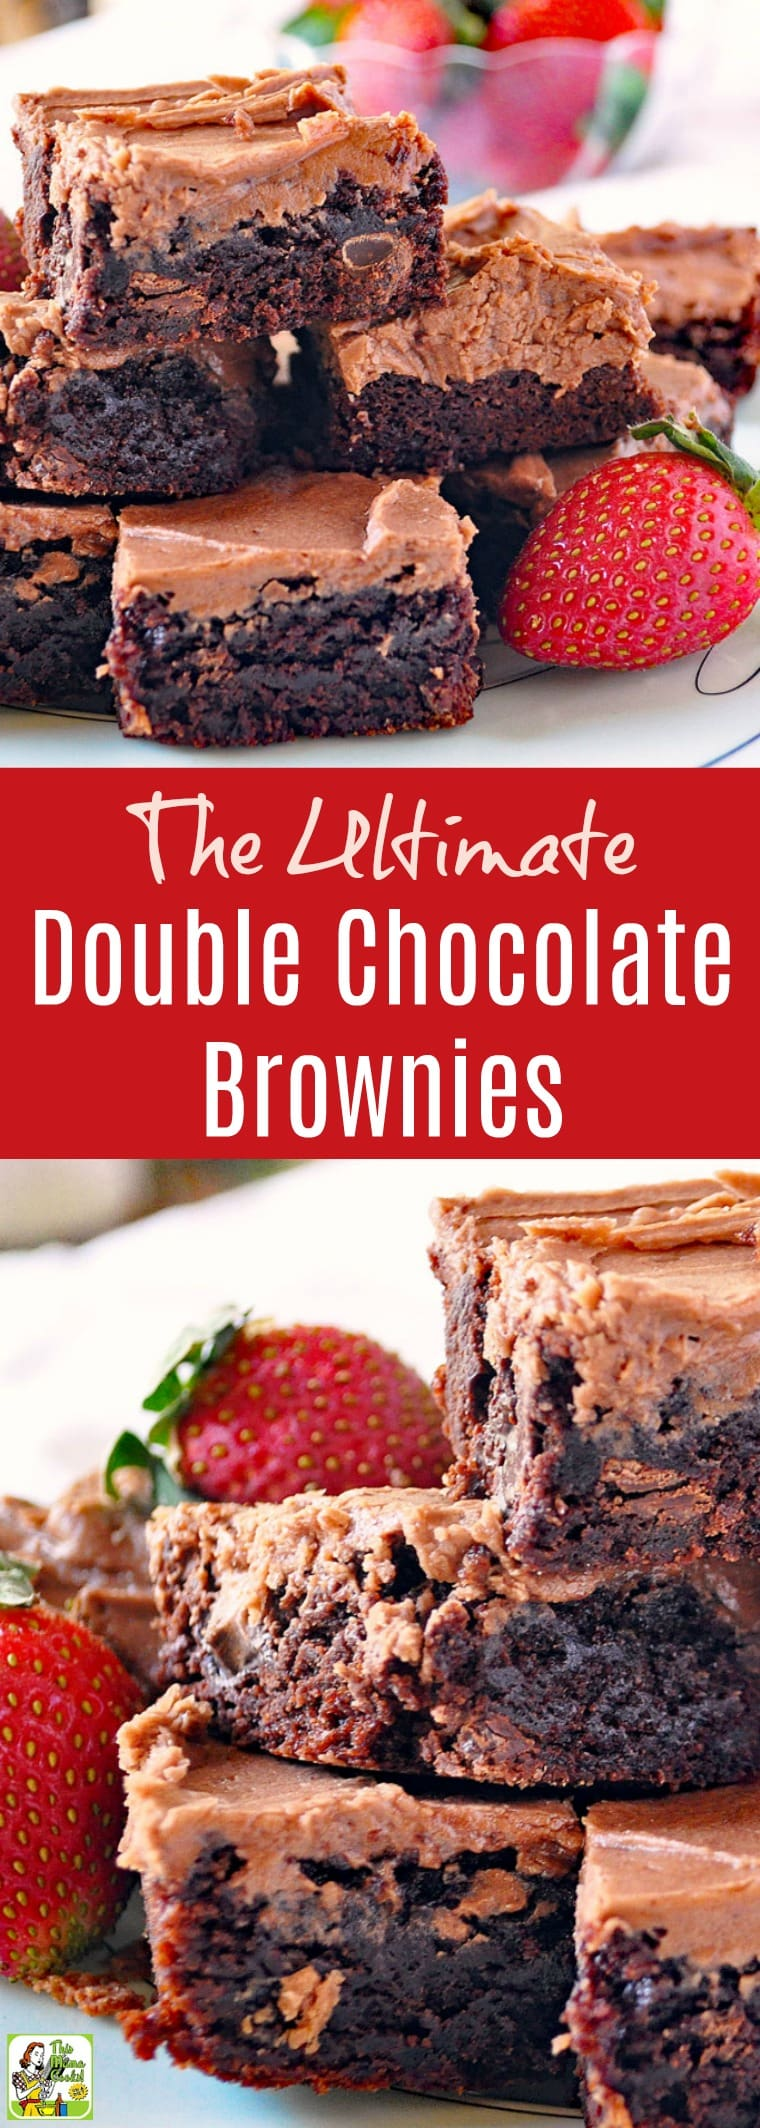 The Ultimate Double Chocolate Brownies Recipe. Click to get this easy chocolate brownies recipe. Comes with tips for making this chocolate dessert recipe gluten free, dairy free, and nut free.